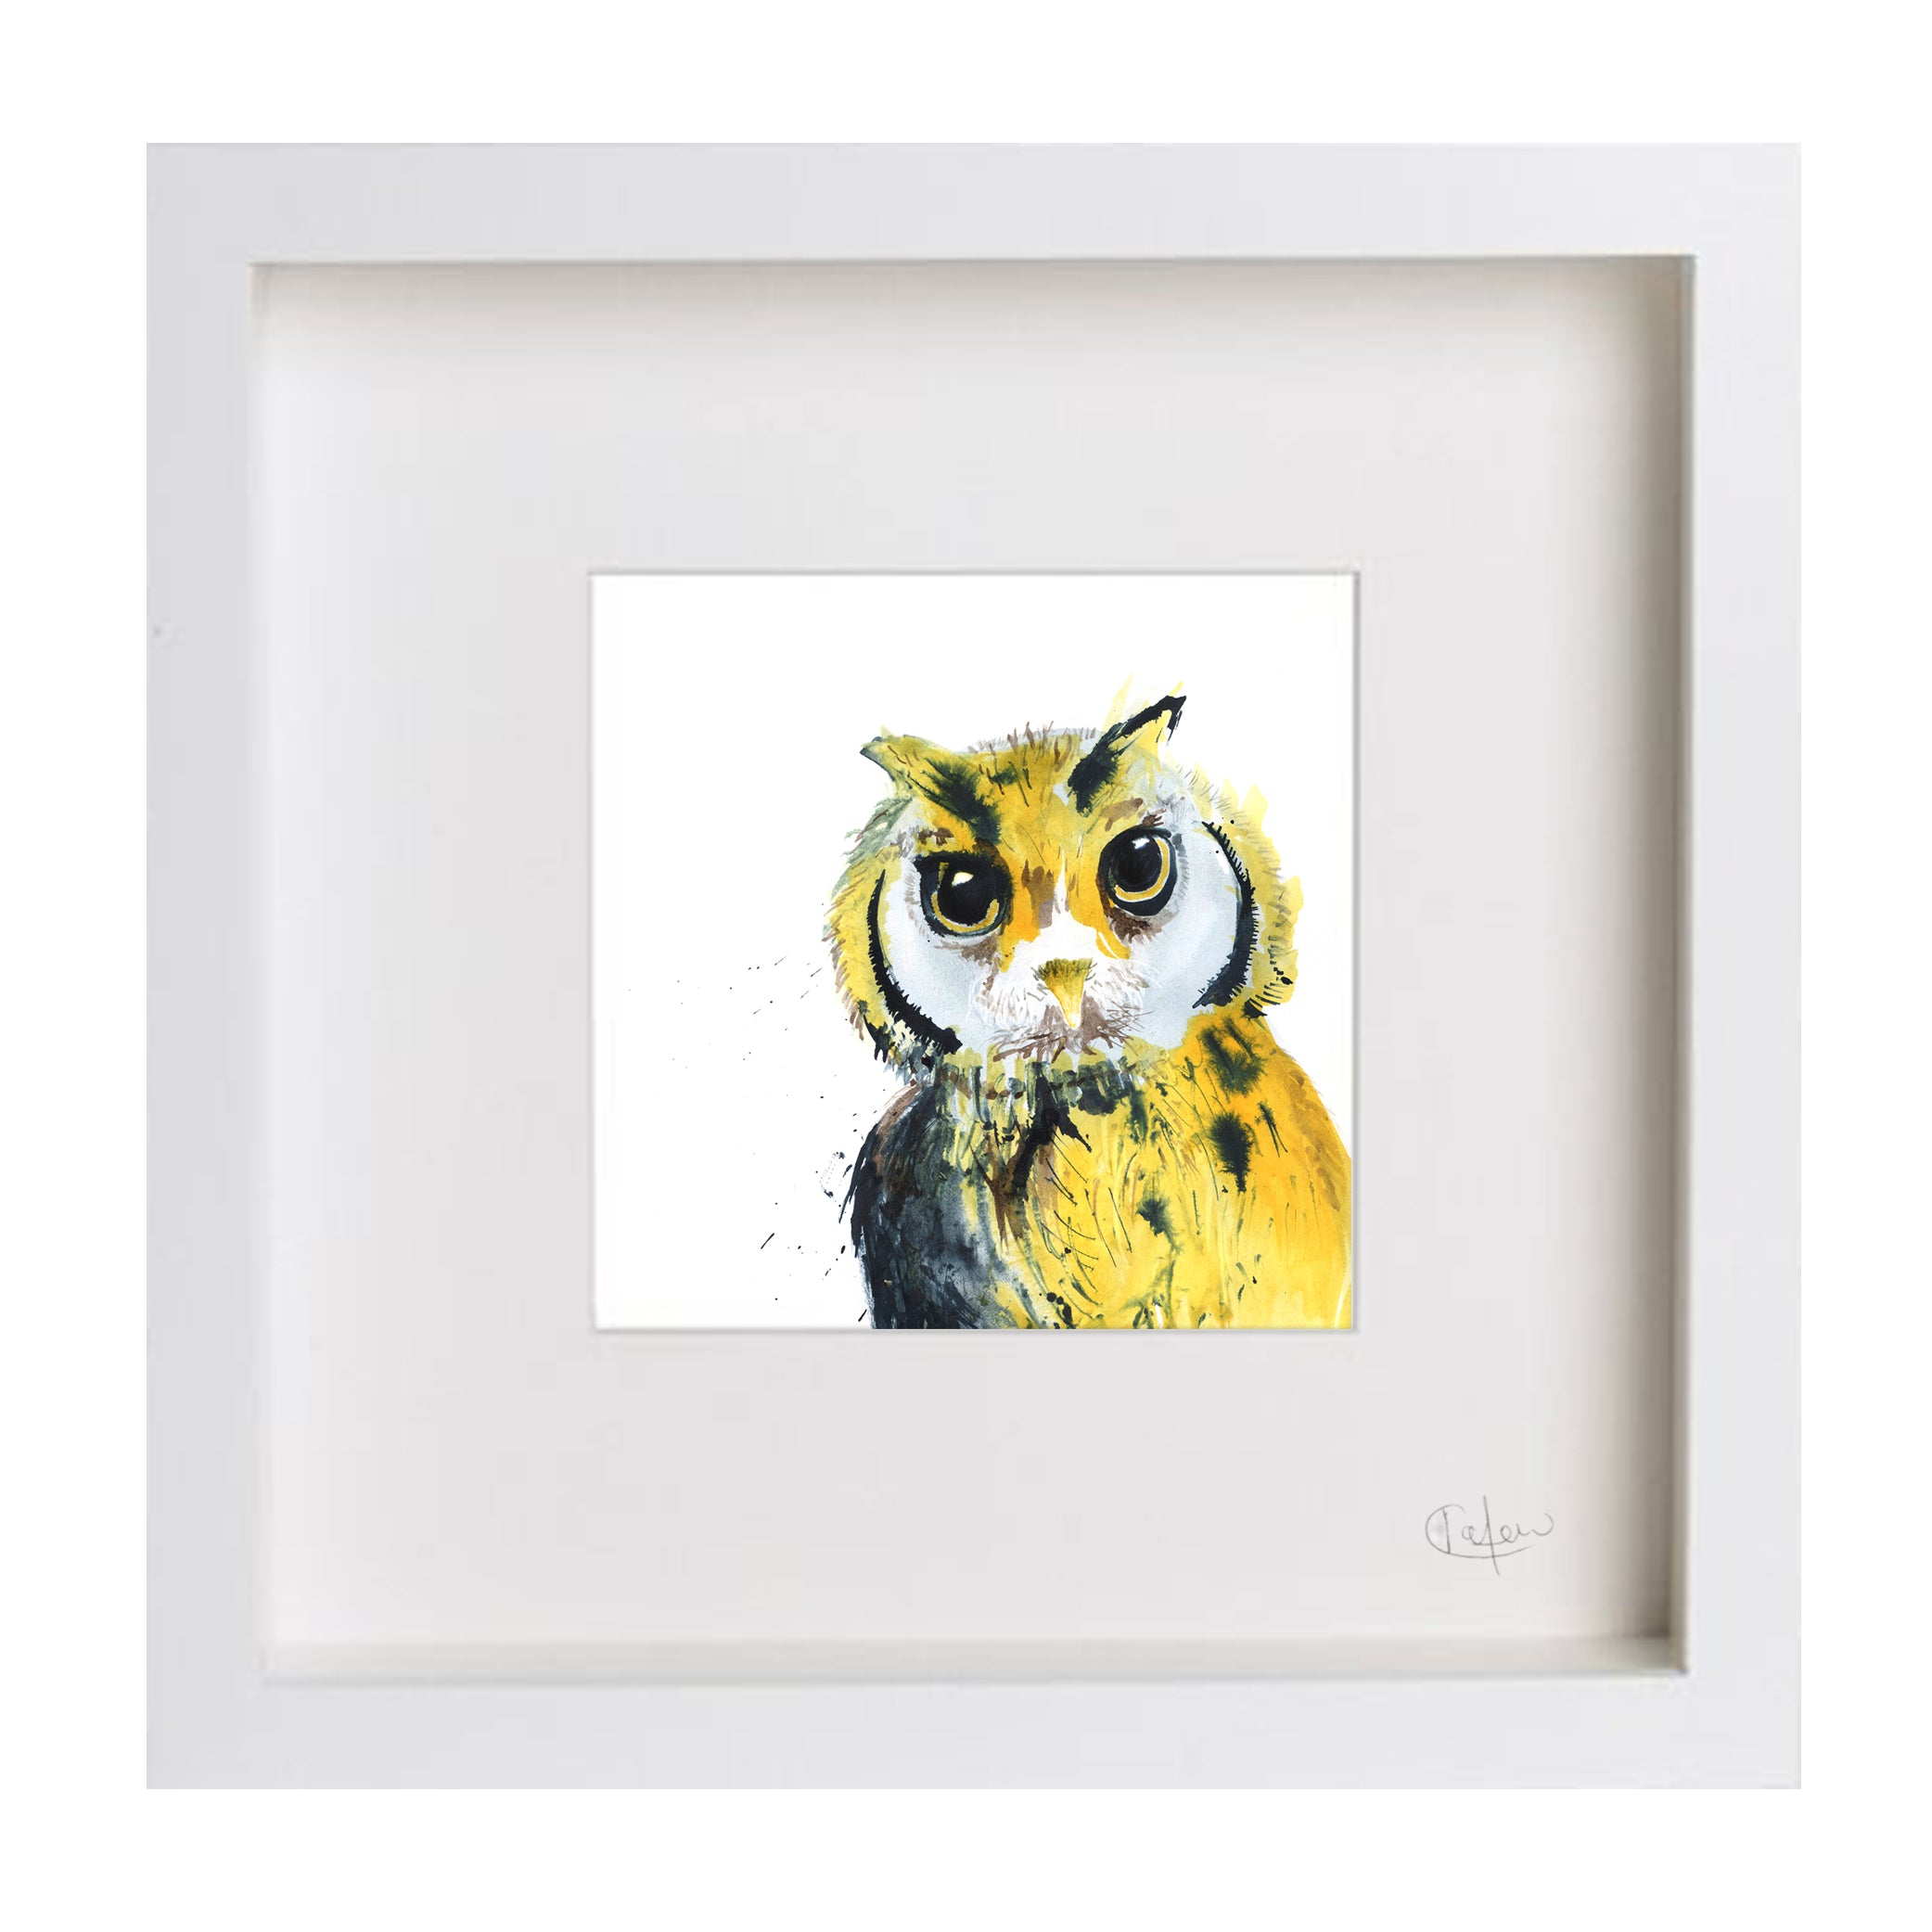 Inky Owl Illustration Print by Kate Moby on OOSTOR.com